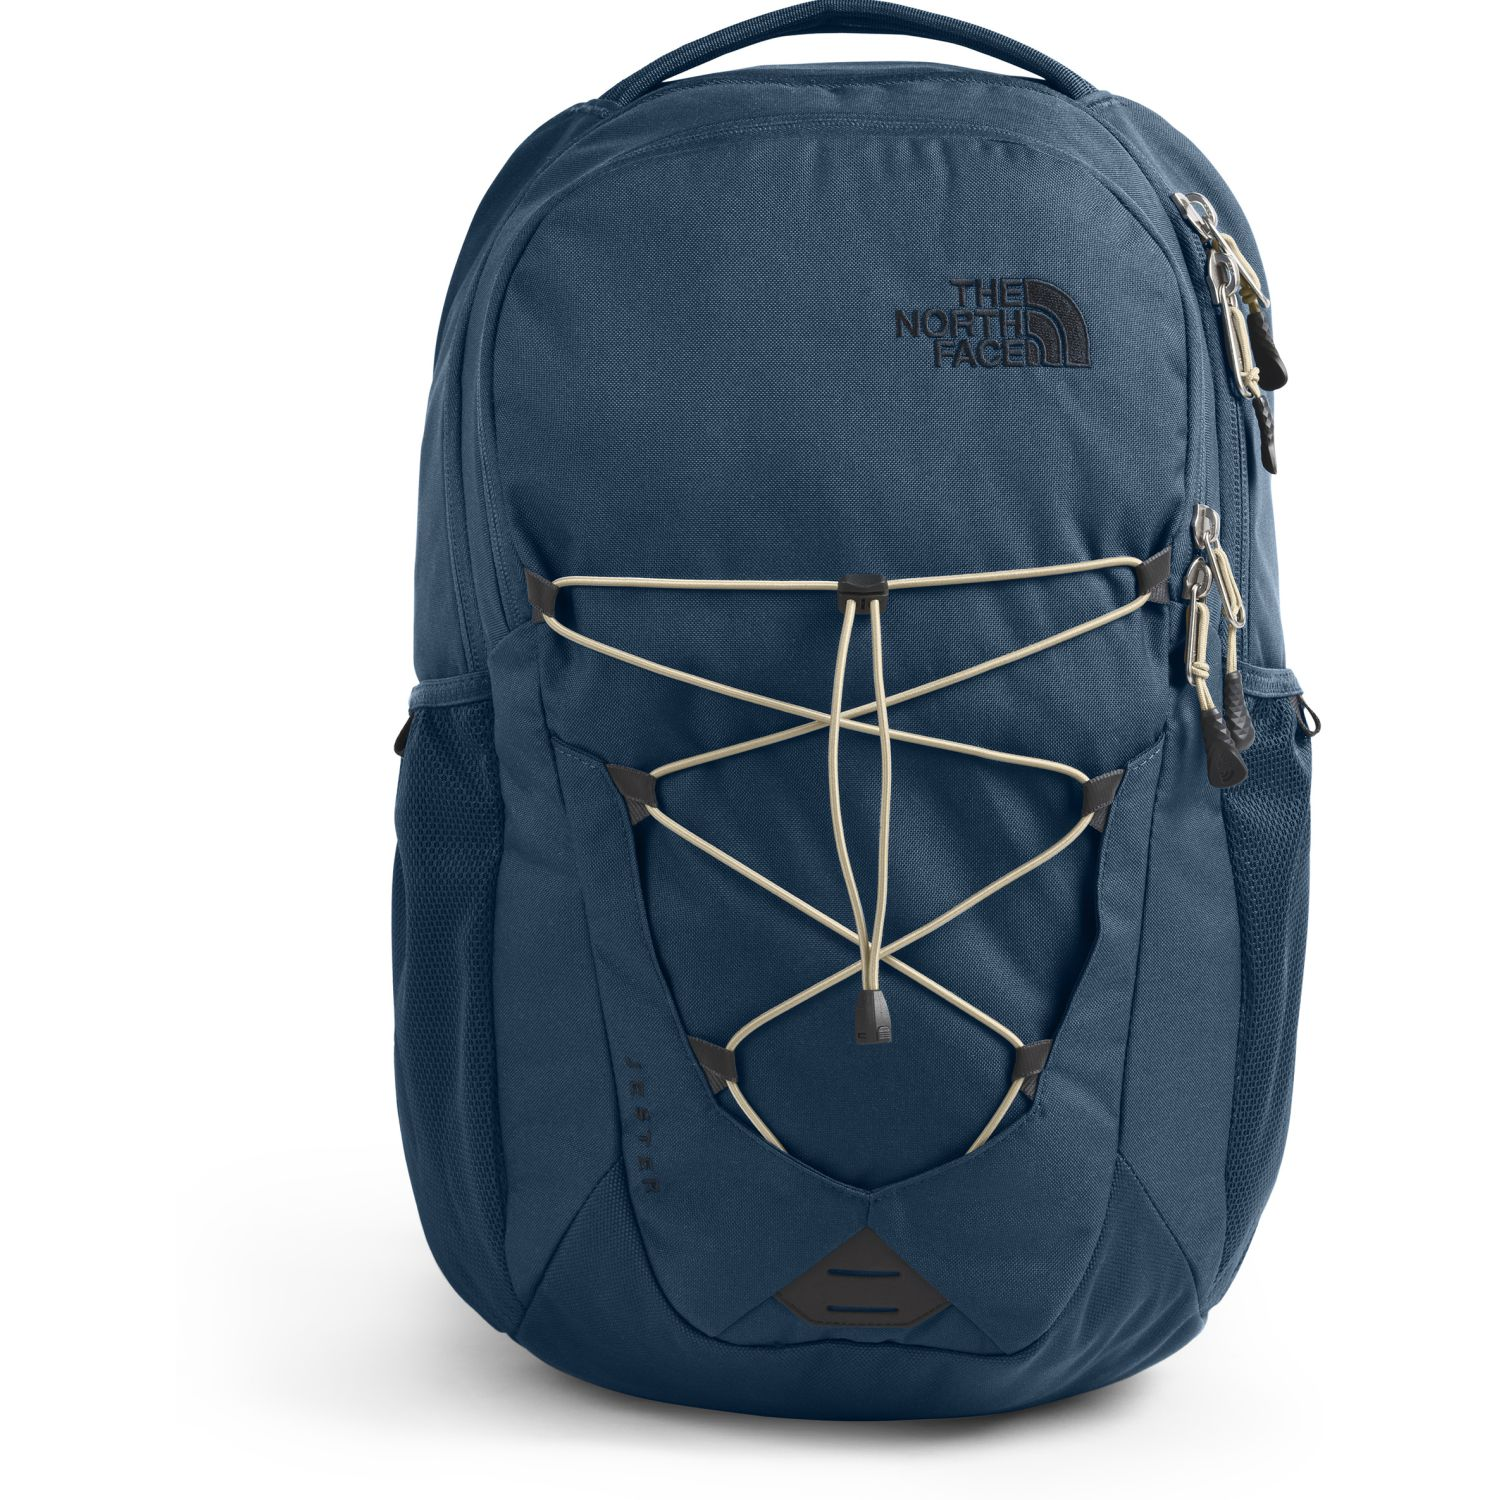 The North Face Jester Azul Mochilas